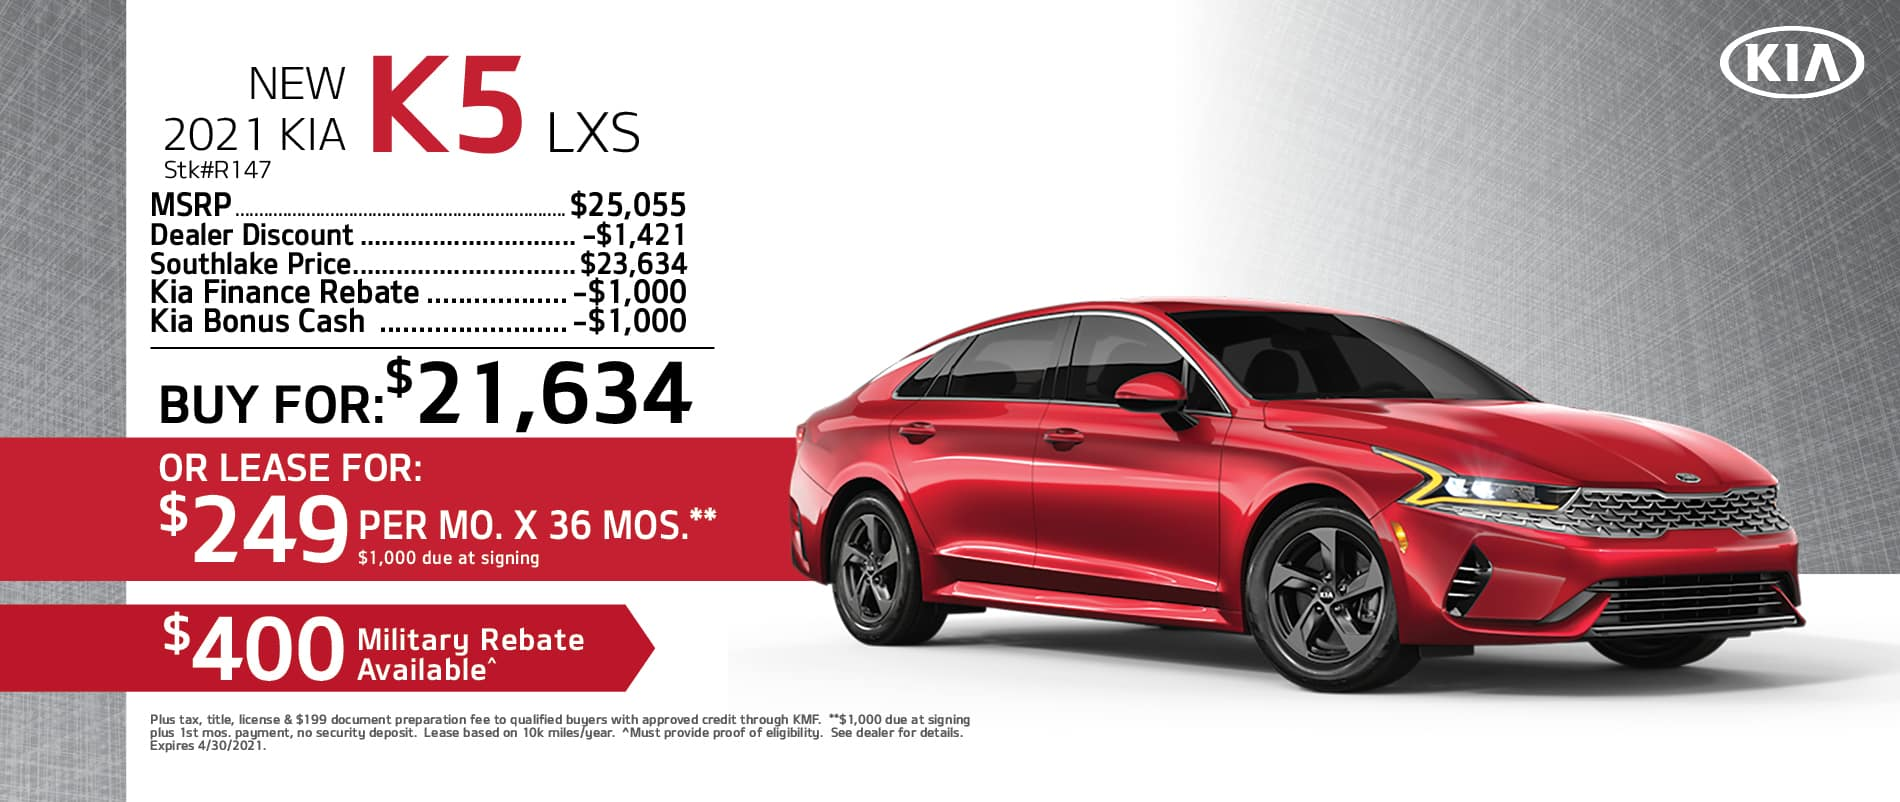 2021 Kia K5 Buy or Lease Offer | Merrillville, Indiana